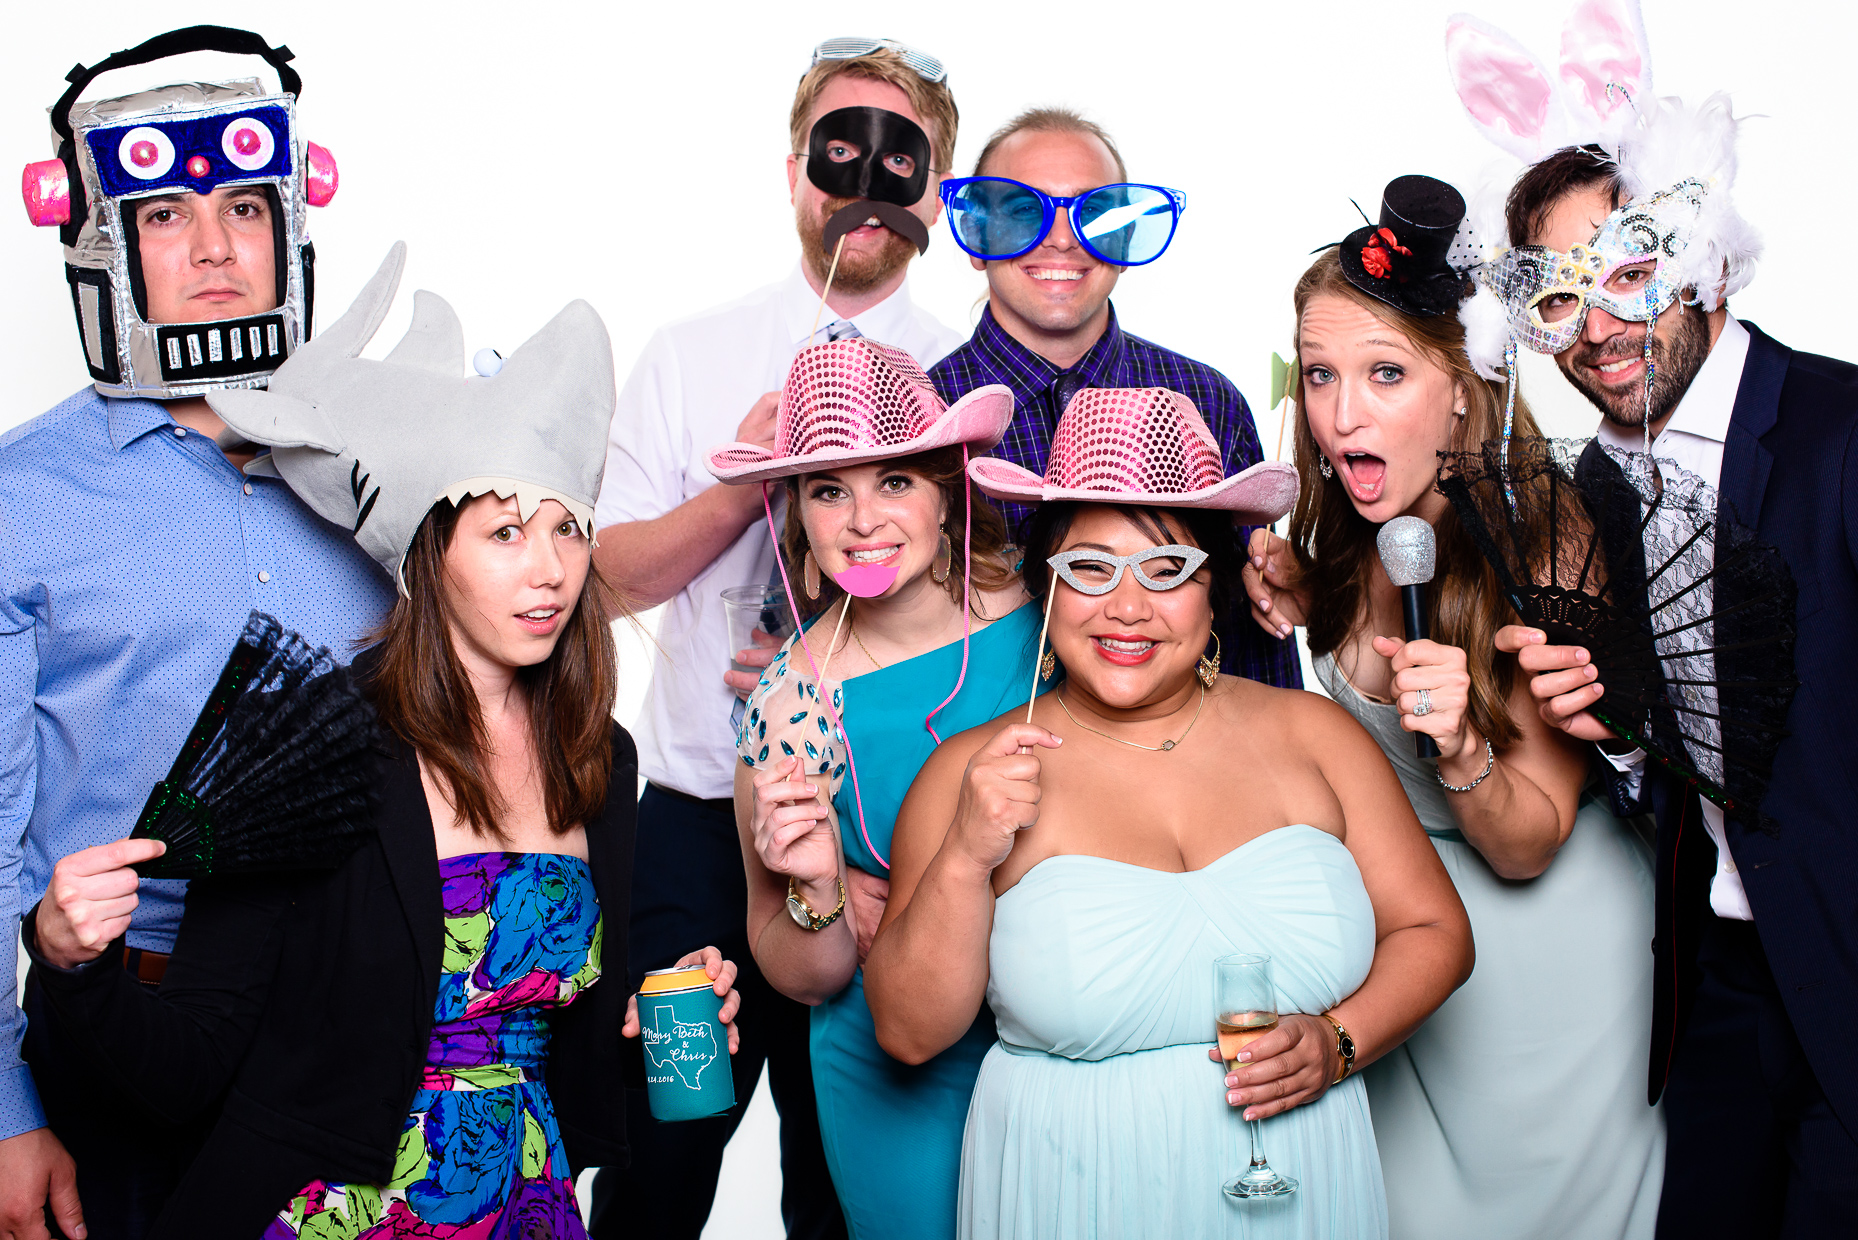 austin-teas-wedding-photographer-photo-booth-friends